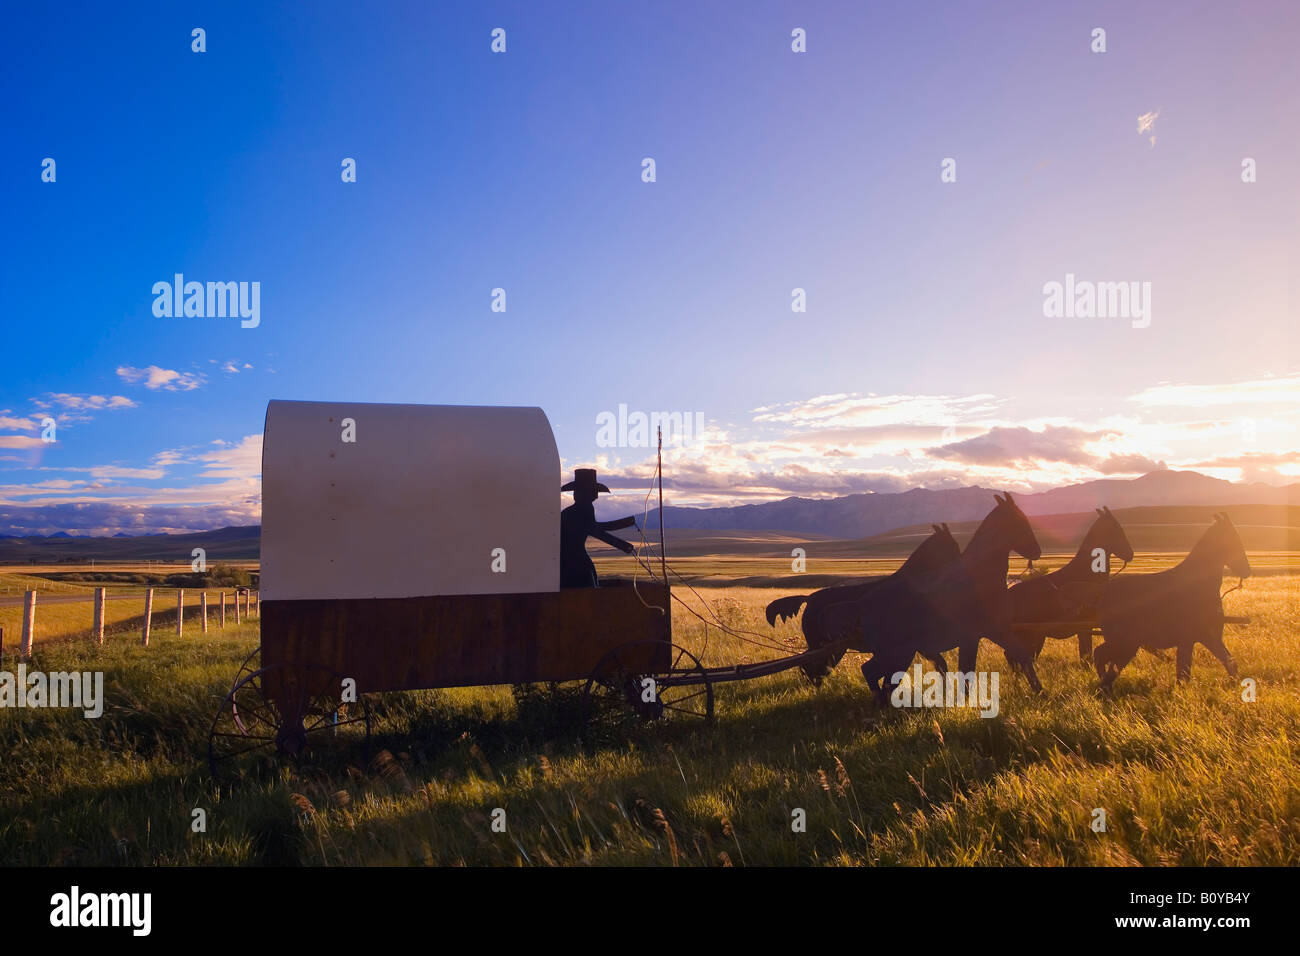 Travel by horse and carriage - Stock Image